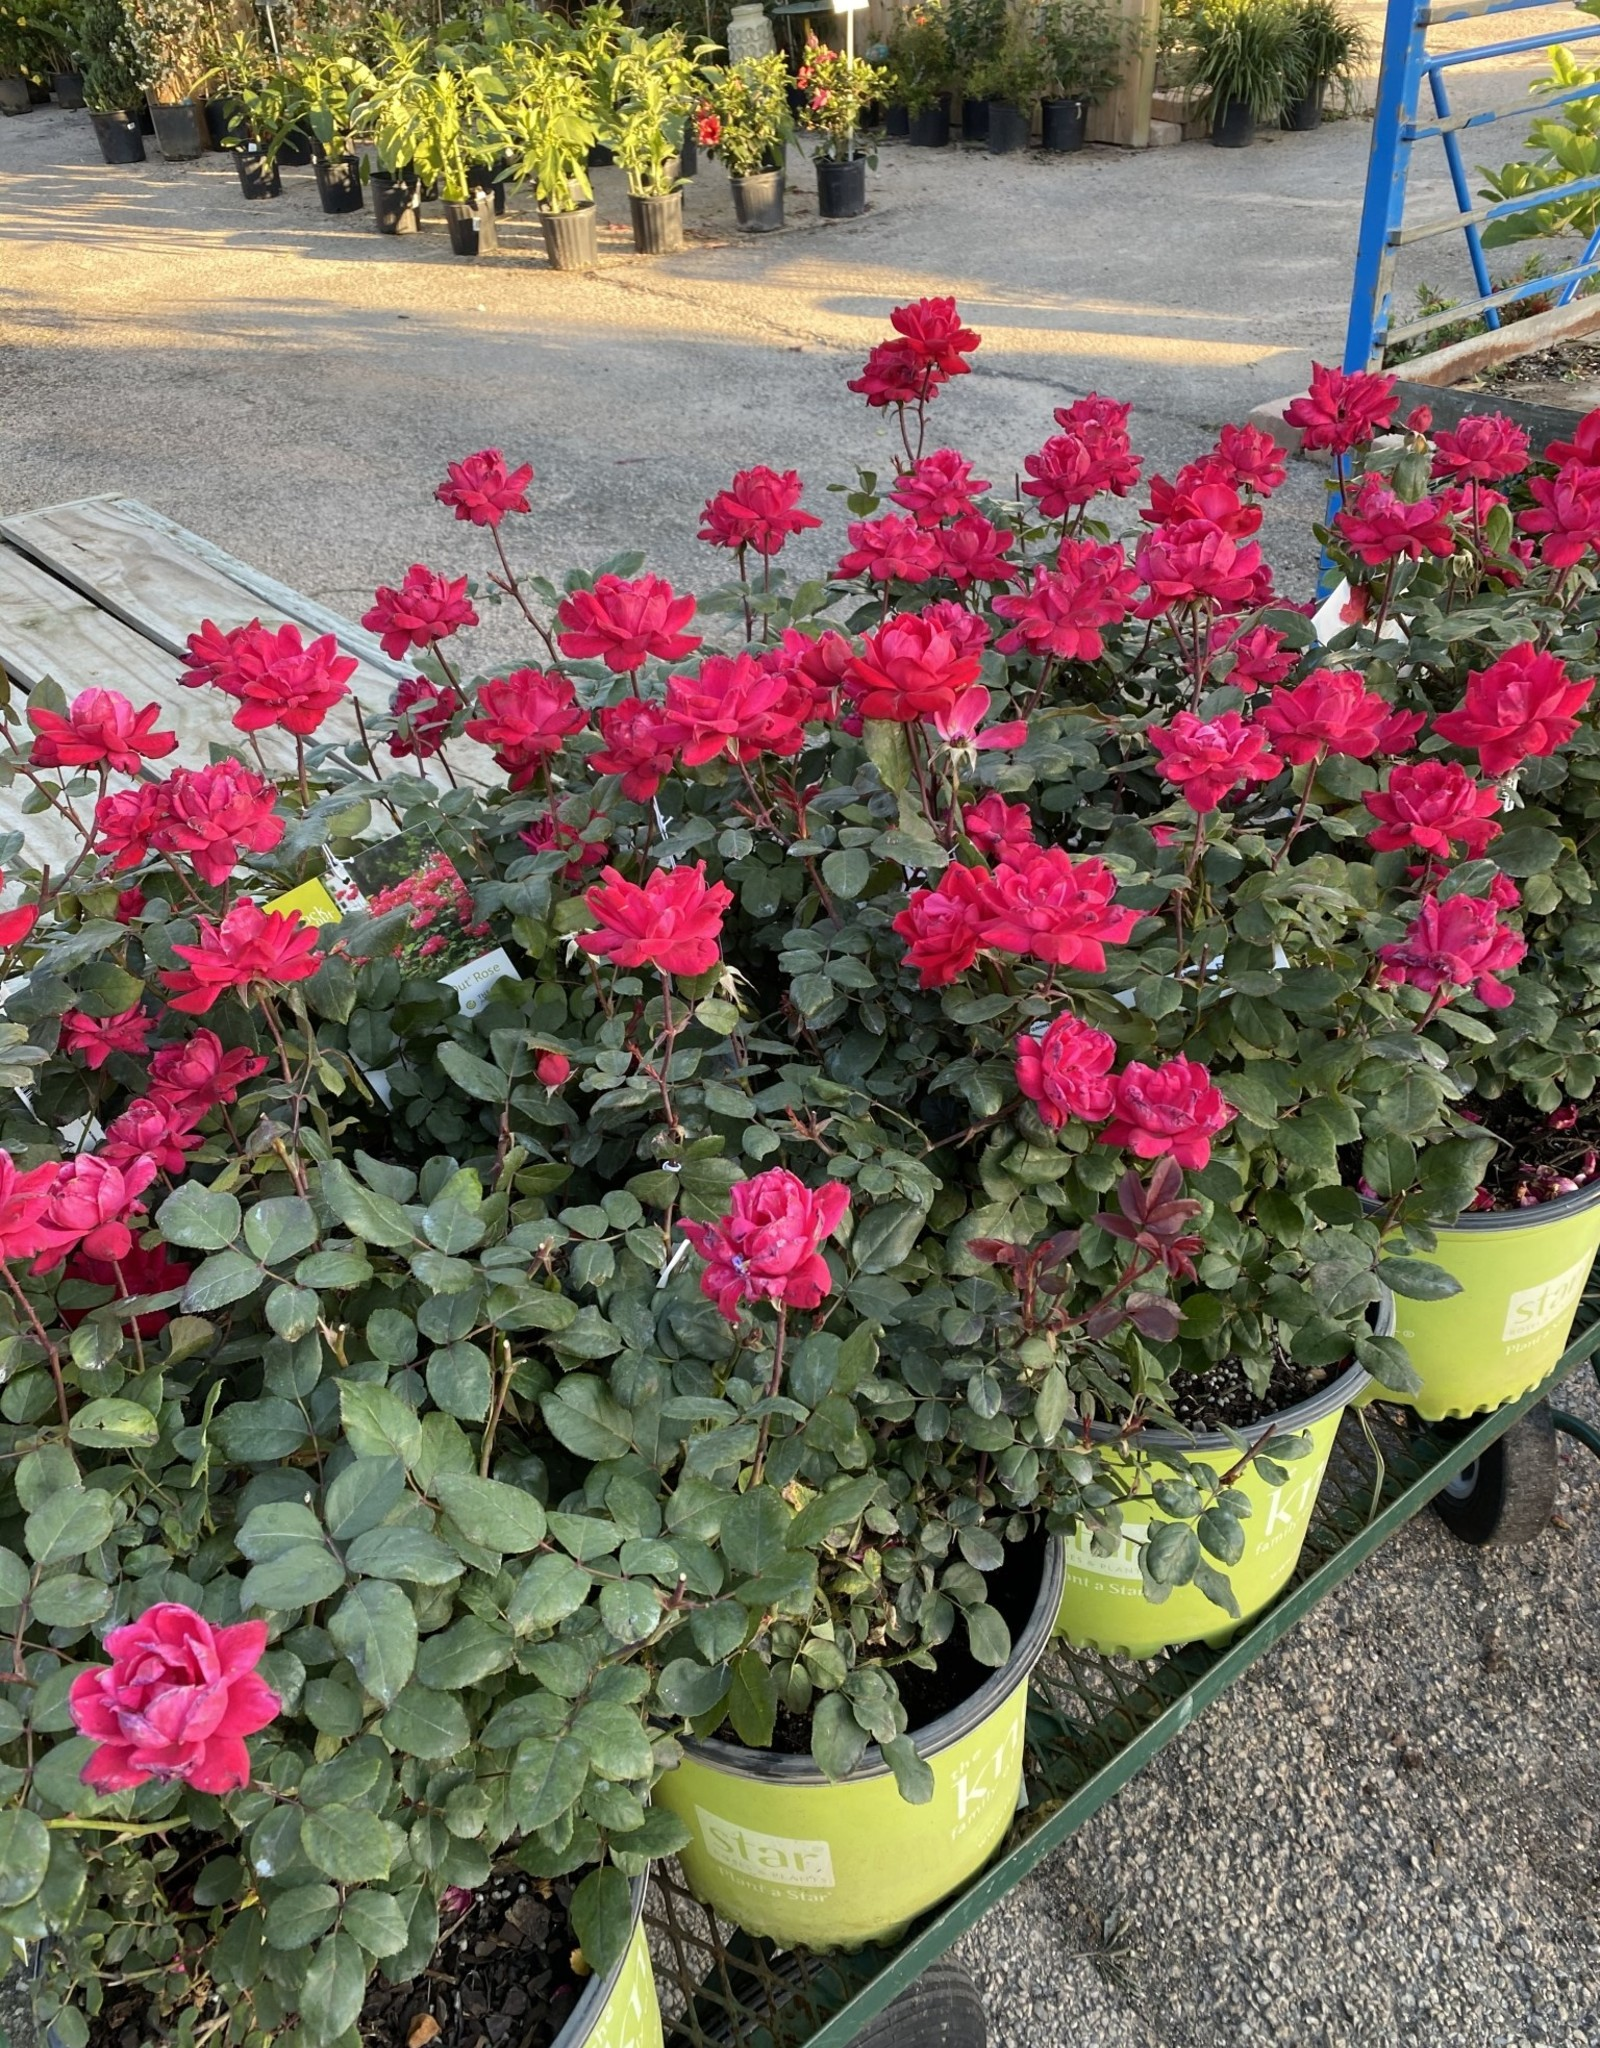 ROSE, 'KNOCK OUT' DOUBLE RED 3G